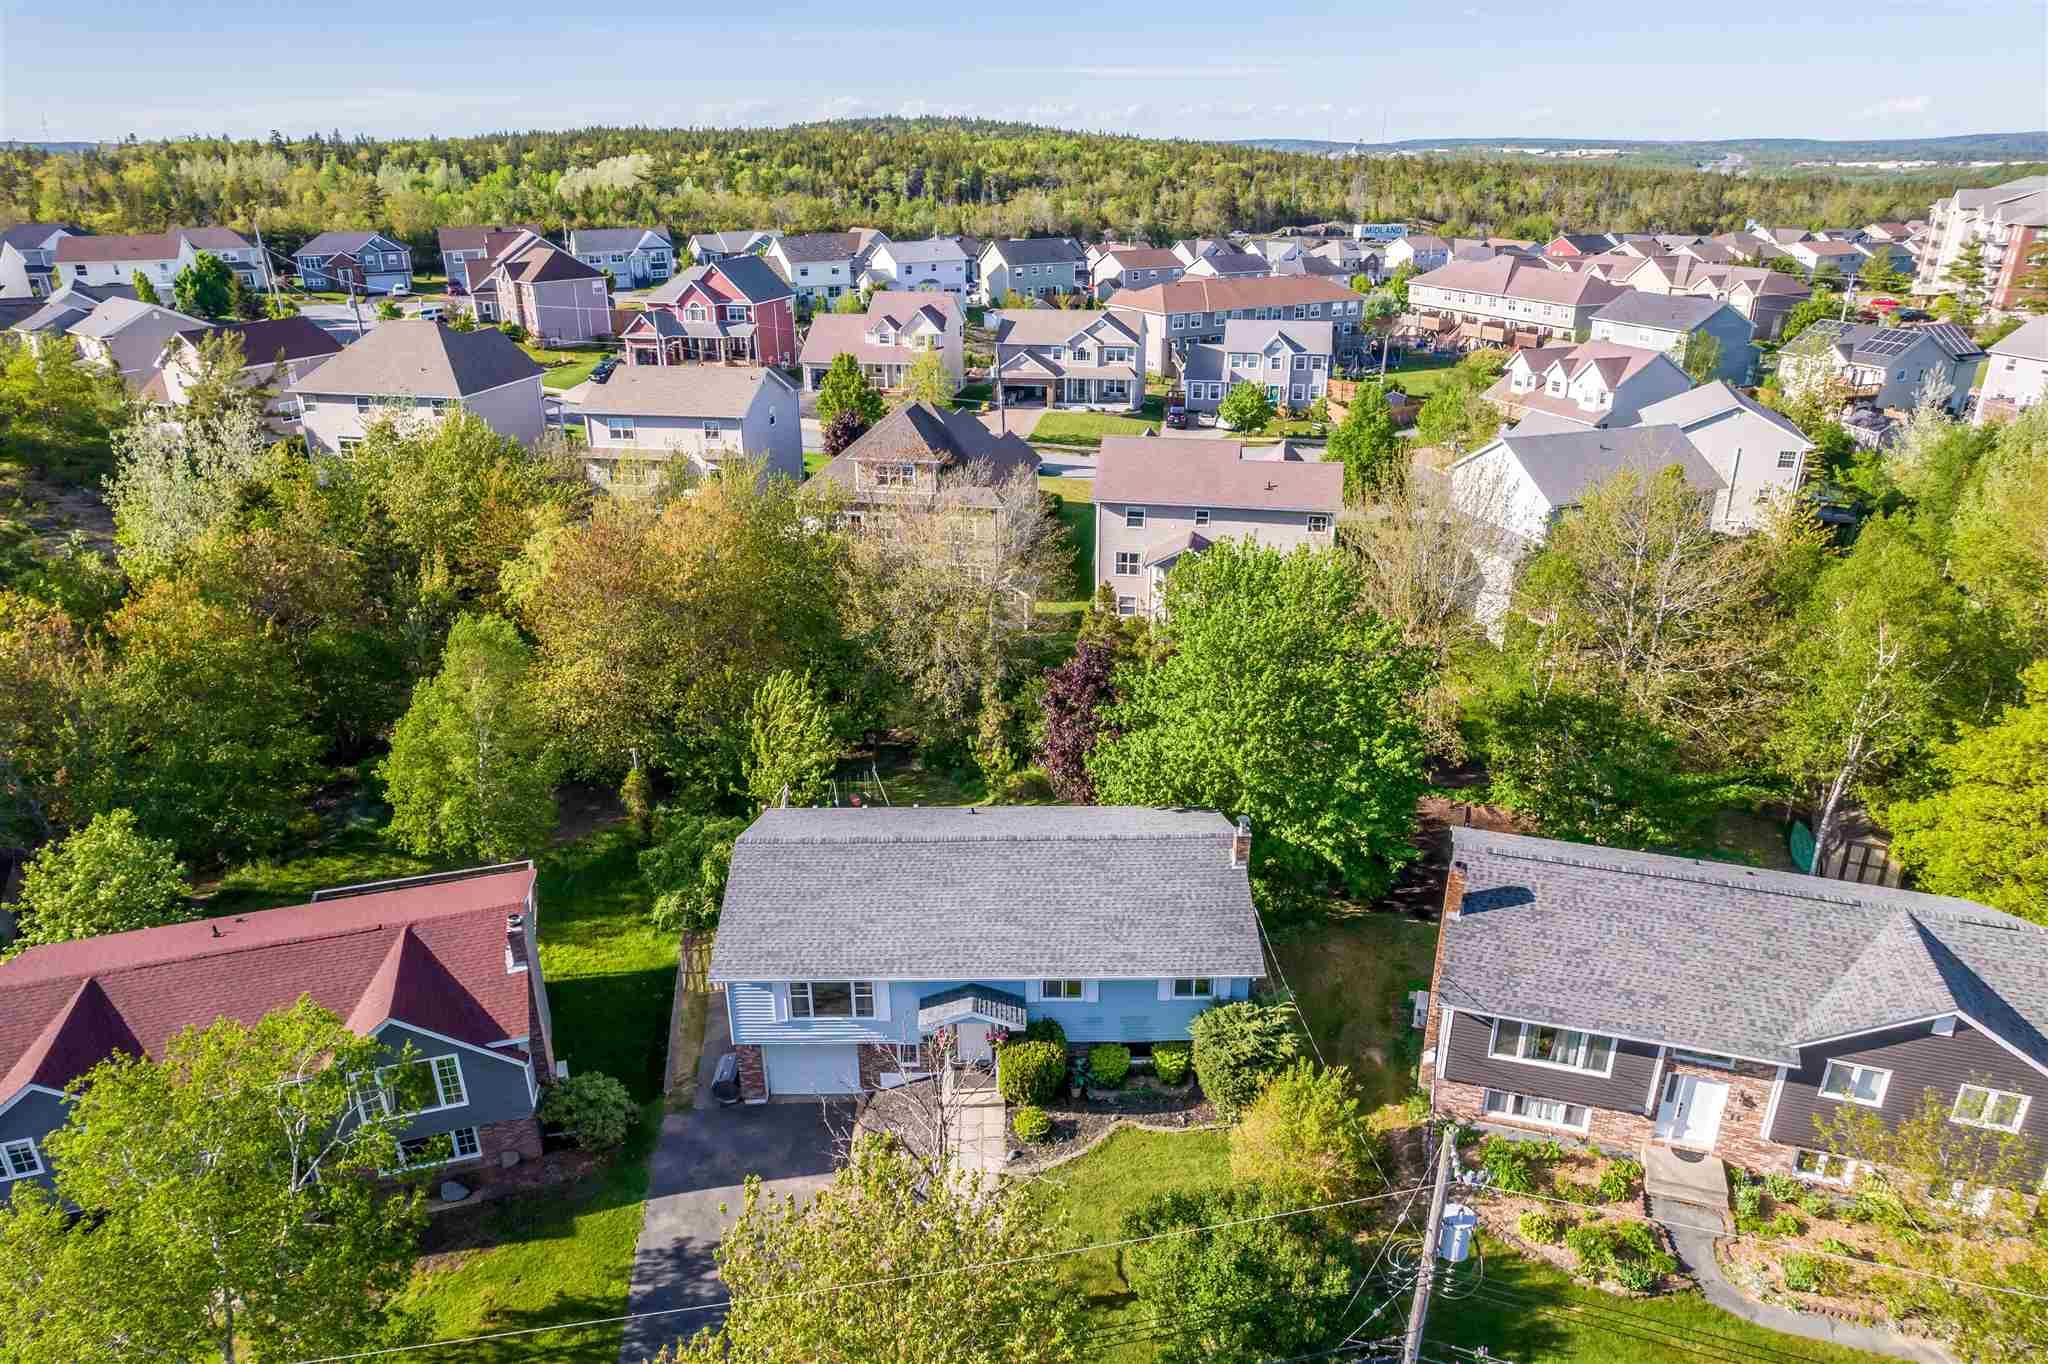 Main Photo: 15 Shoreview Drive in Bedford: 20-Bedford Residential for sale (Halifax-Dartmouth)  : MLS®# 202113835